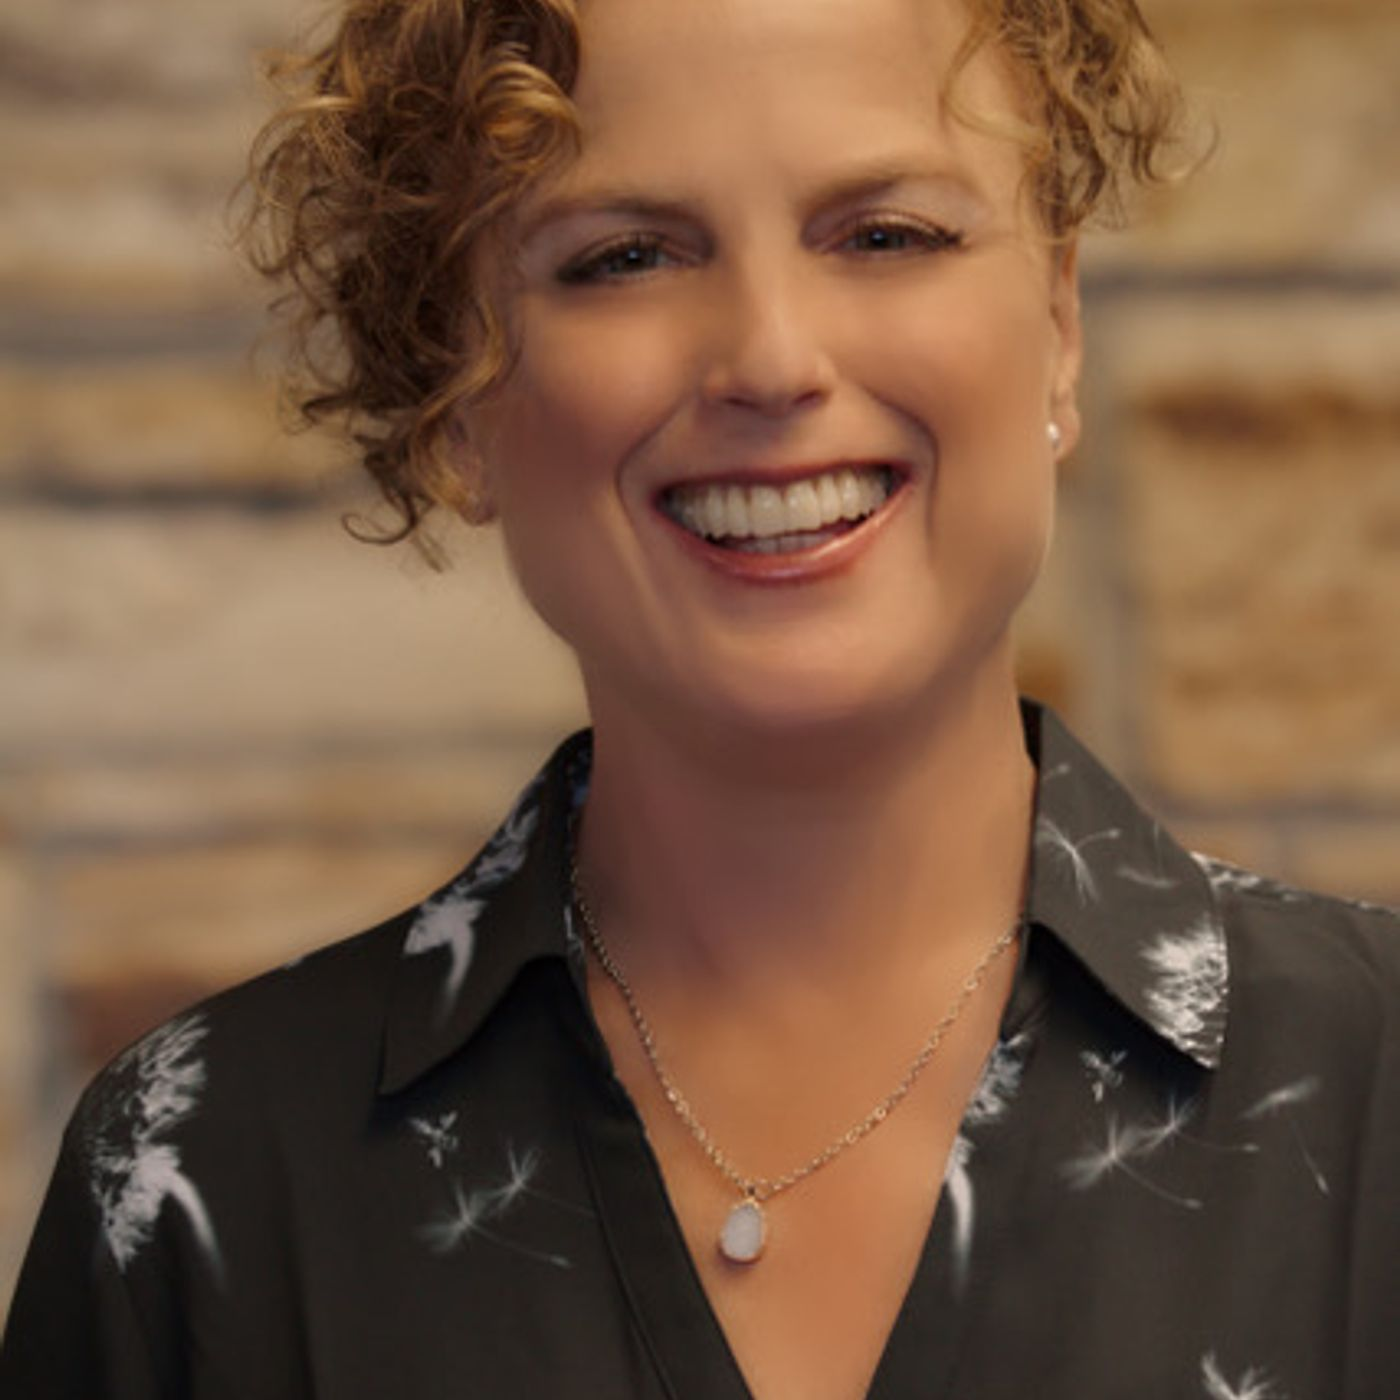 Guest, Kim Von Berg, Speaker, Trainer, Counselor, Coach, of Thriving Loving Relationships